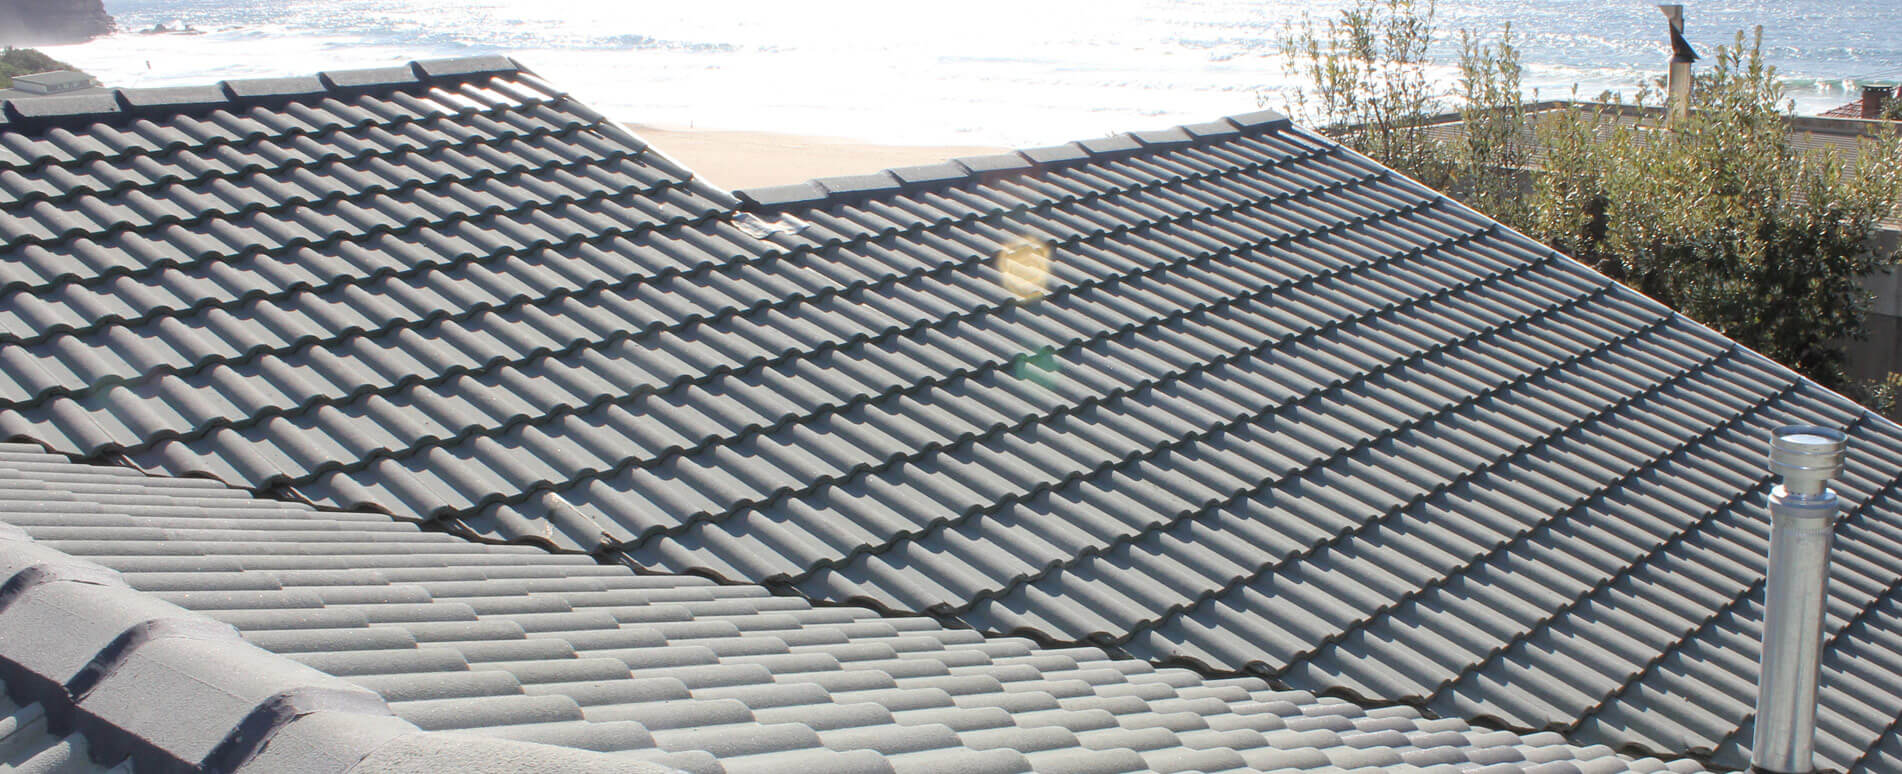 New Roof are easy with Rekote Roofing